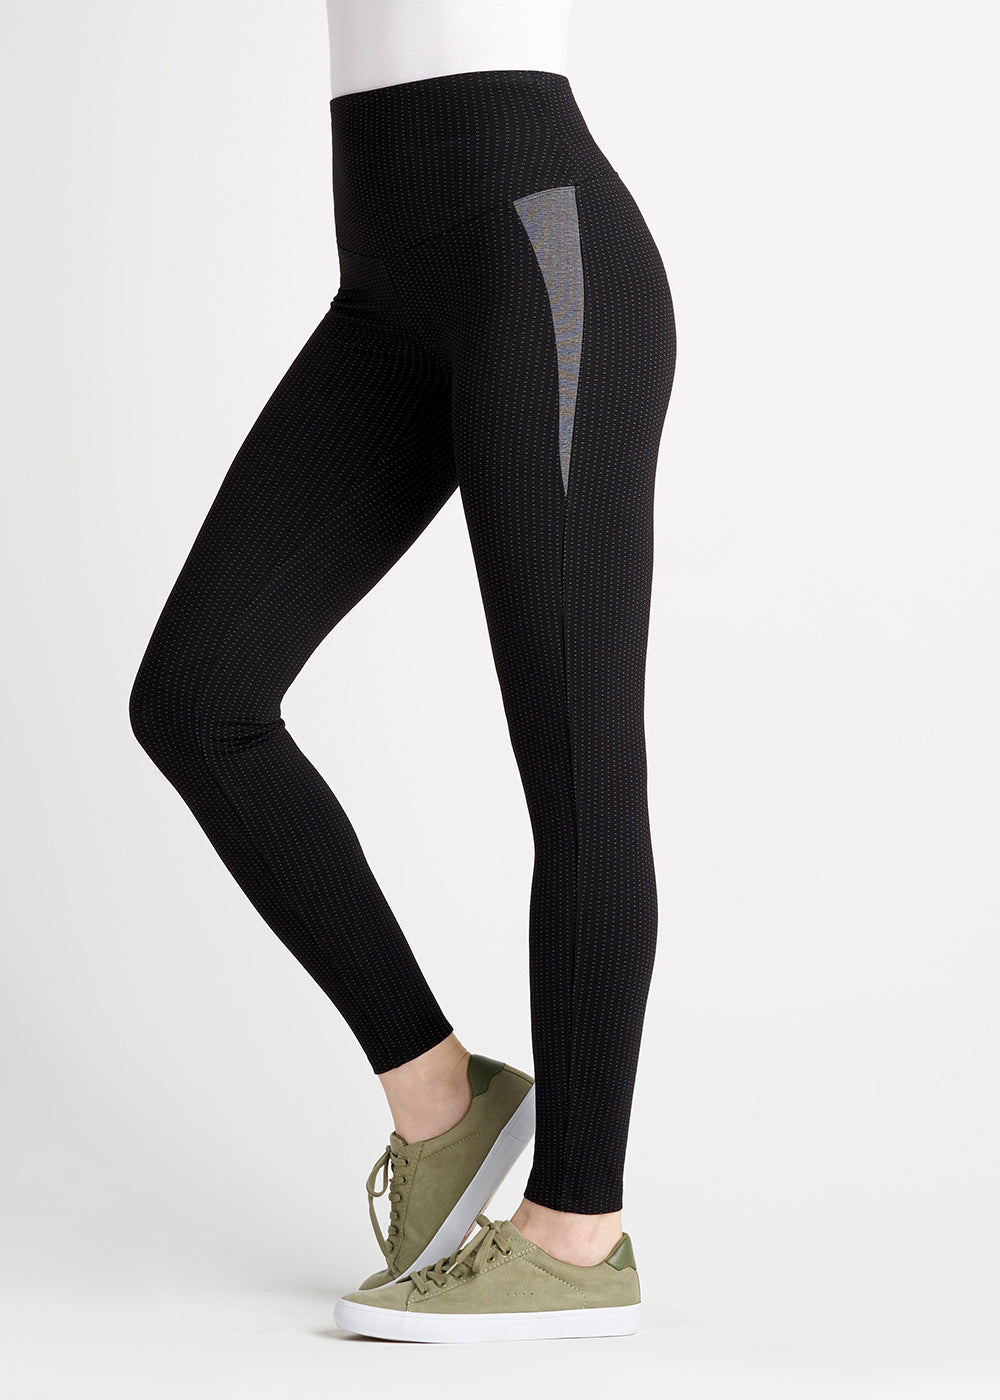 Yummie Menswear Inspired Ponte Shaping Legging